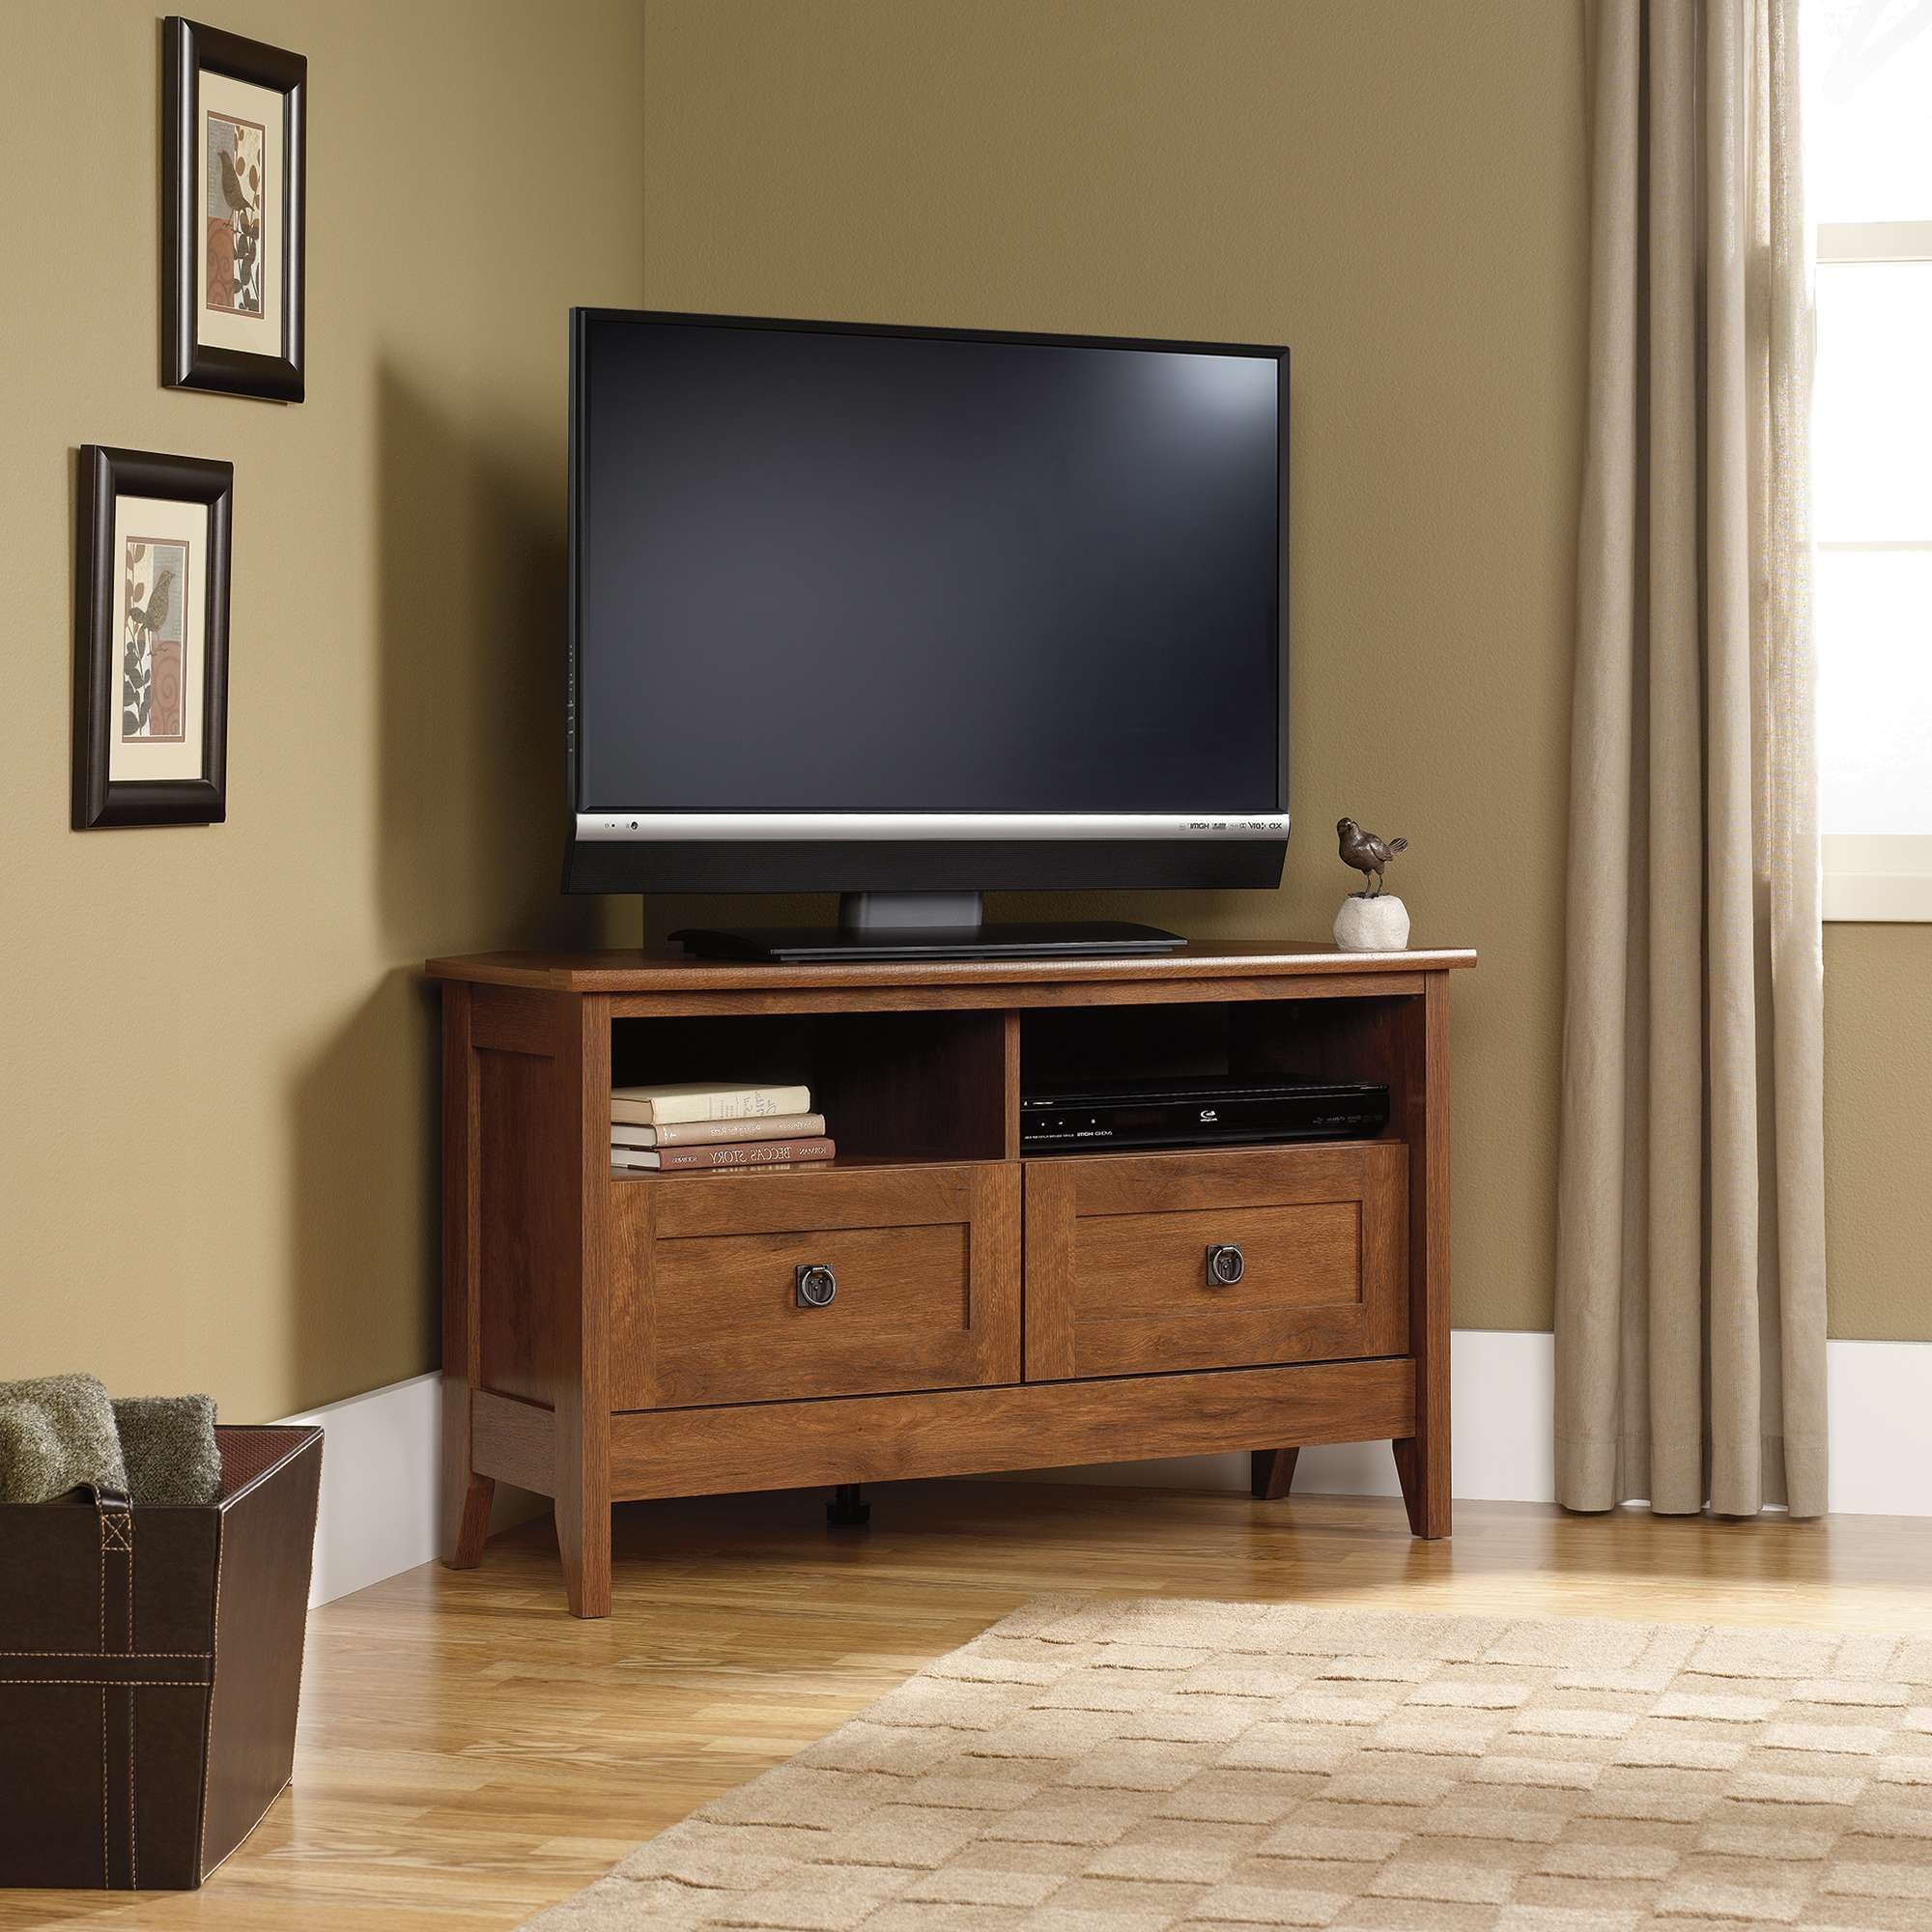 Sauder Select | Corner Tv Stand | 410627 | Sauder With Regard To Tv Cabinets (View 7 of 20)